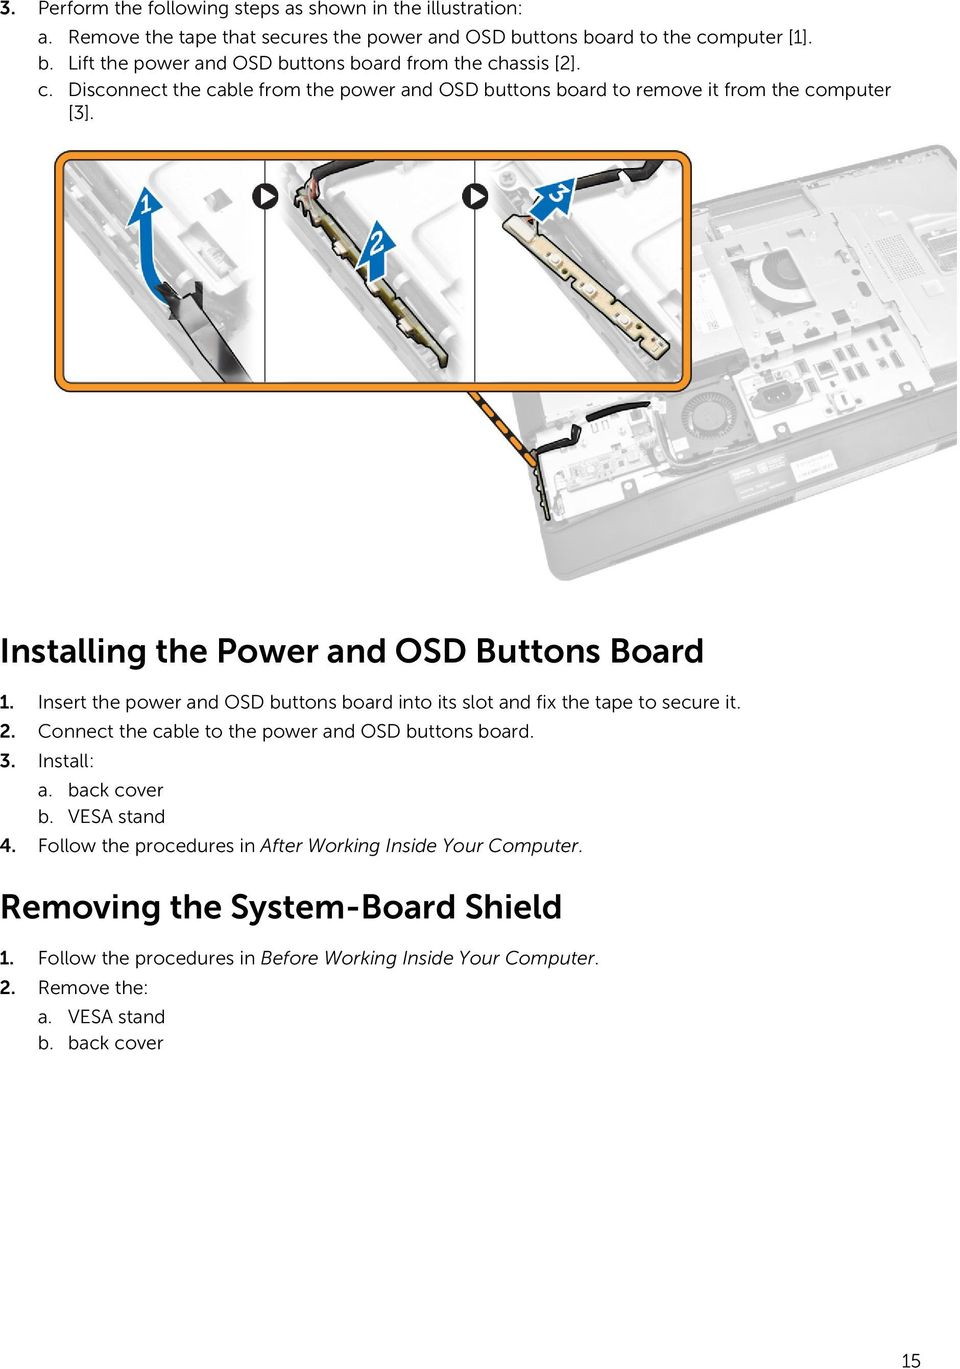 Insert the power and OSD buttons board into its slot and fix the tape to secure it. 2. Connect the cable to the power and OSD buttons board. 3. Install: a. back cover b. VESA stand 4.